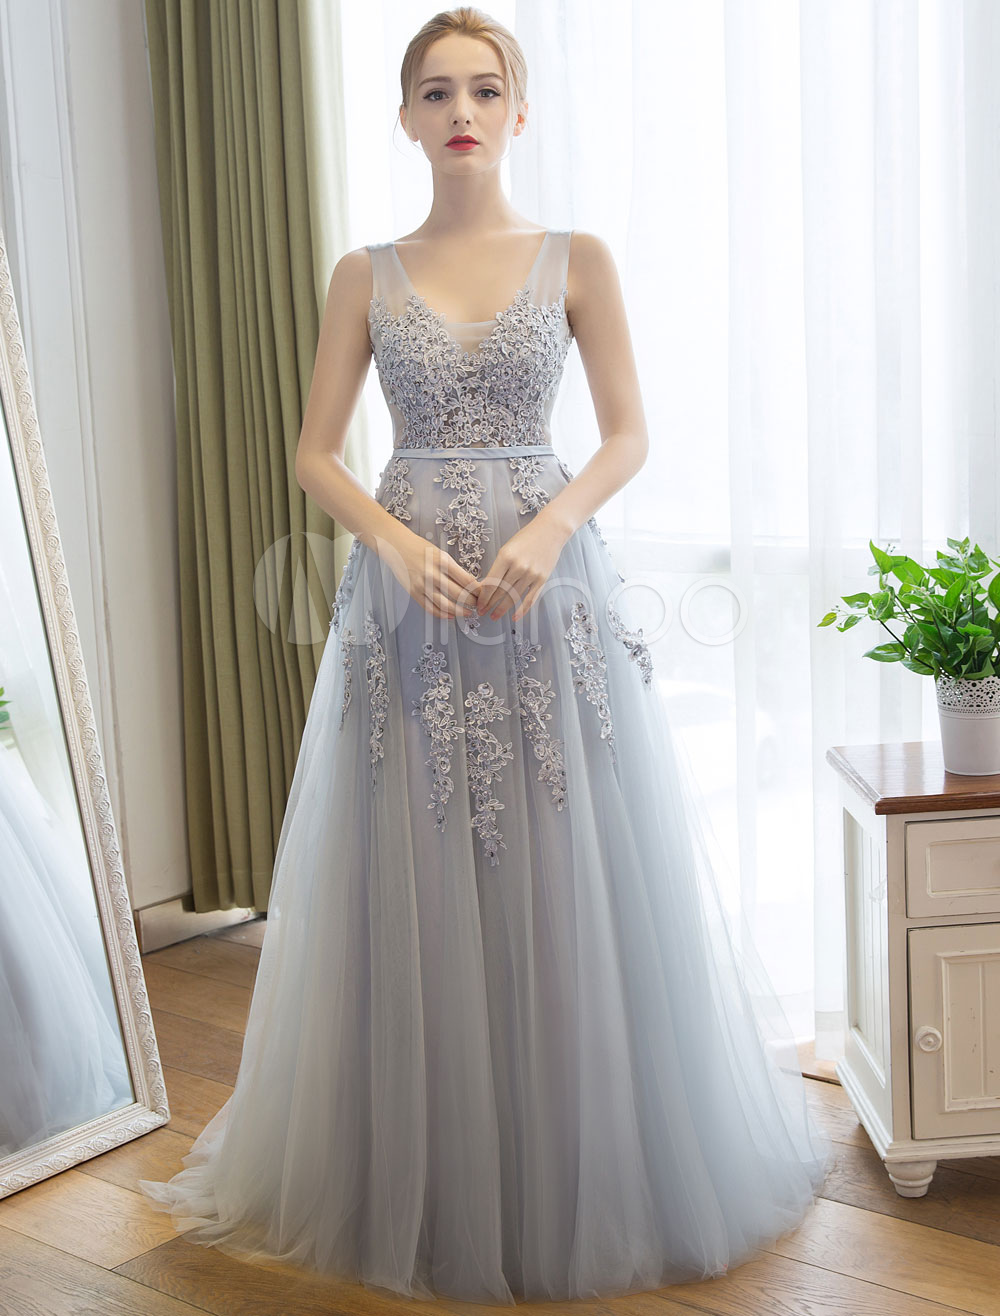 Prom Dresses Long V Neck  Lace Light Gray Party Dress Beading Applique Tulle Maxi Evening Dress With Train